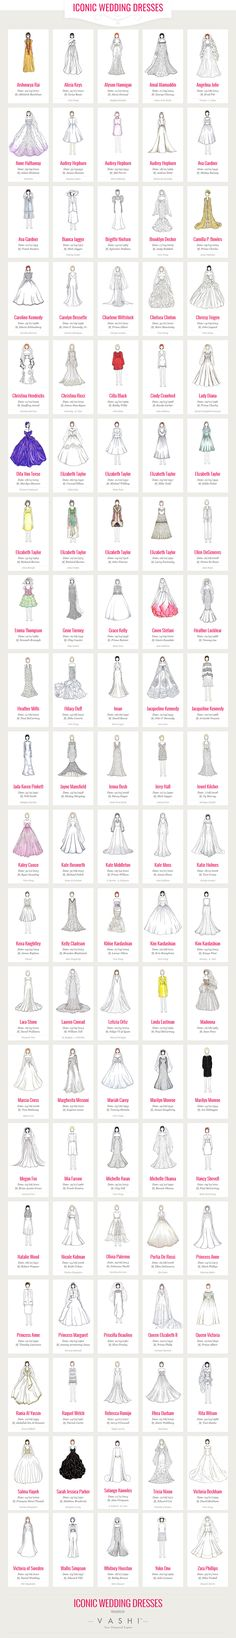 Here's a full, mind-blowing version of the graphic with all 100 dresses, from Indian actress Aishwarya Rai to British royal Zara Phillips. It's hard to pick just ONE favorite: | Here Are 100 Of The Most Stylish Celeb Wedding Gowns Ever